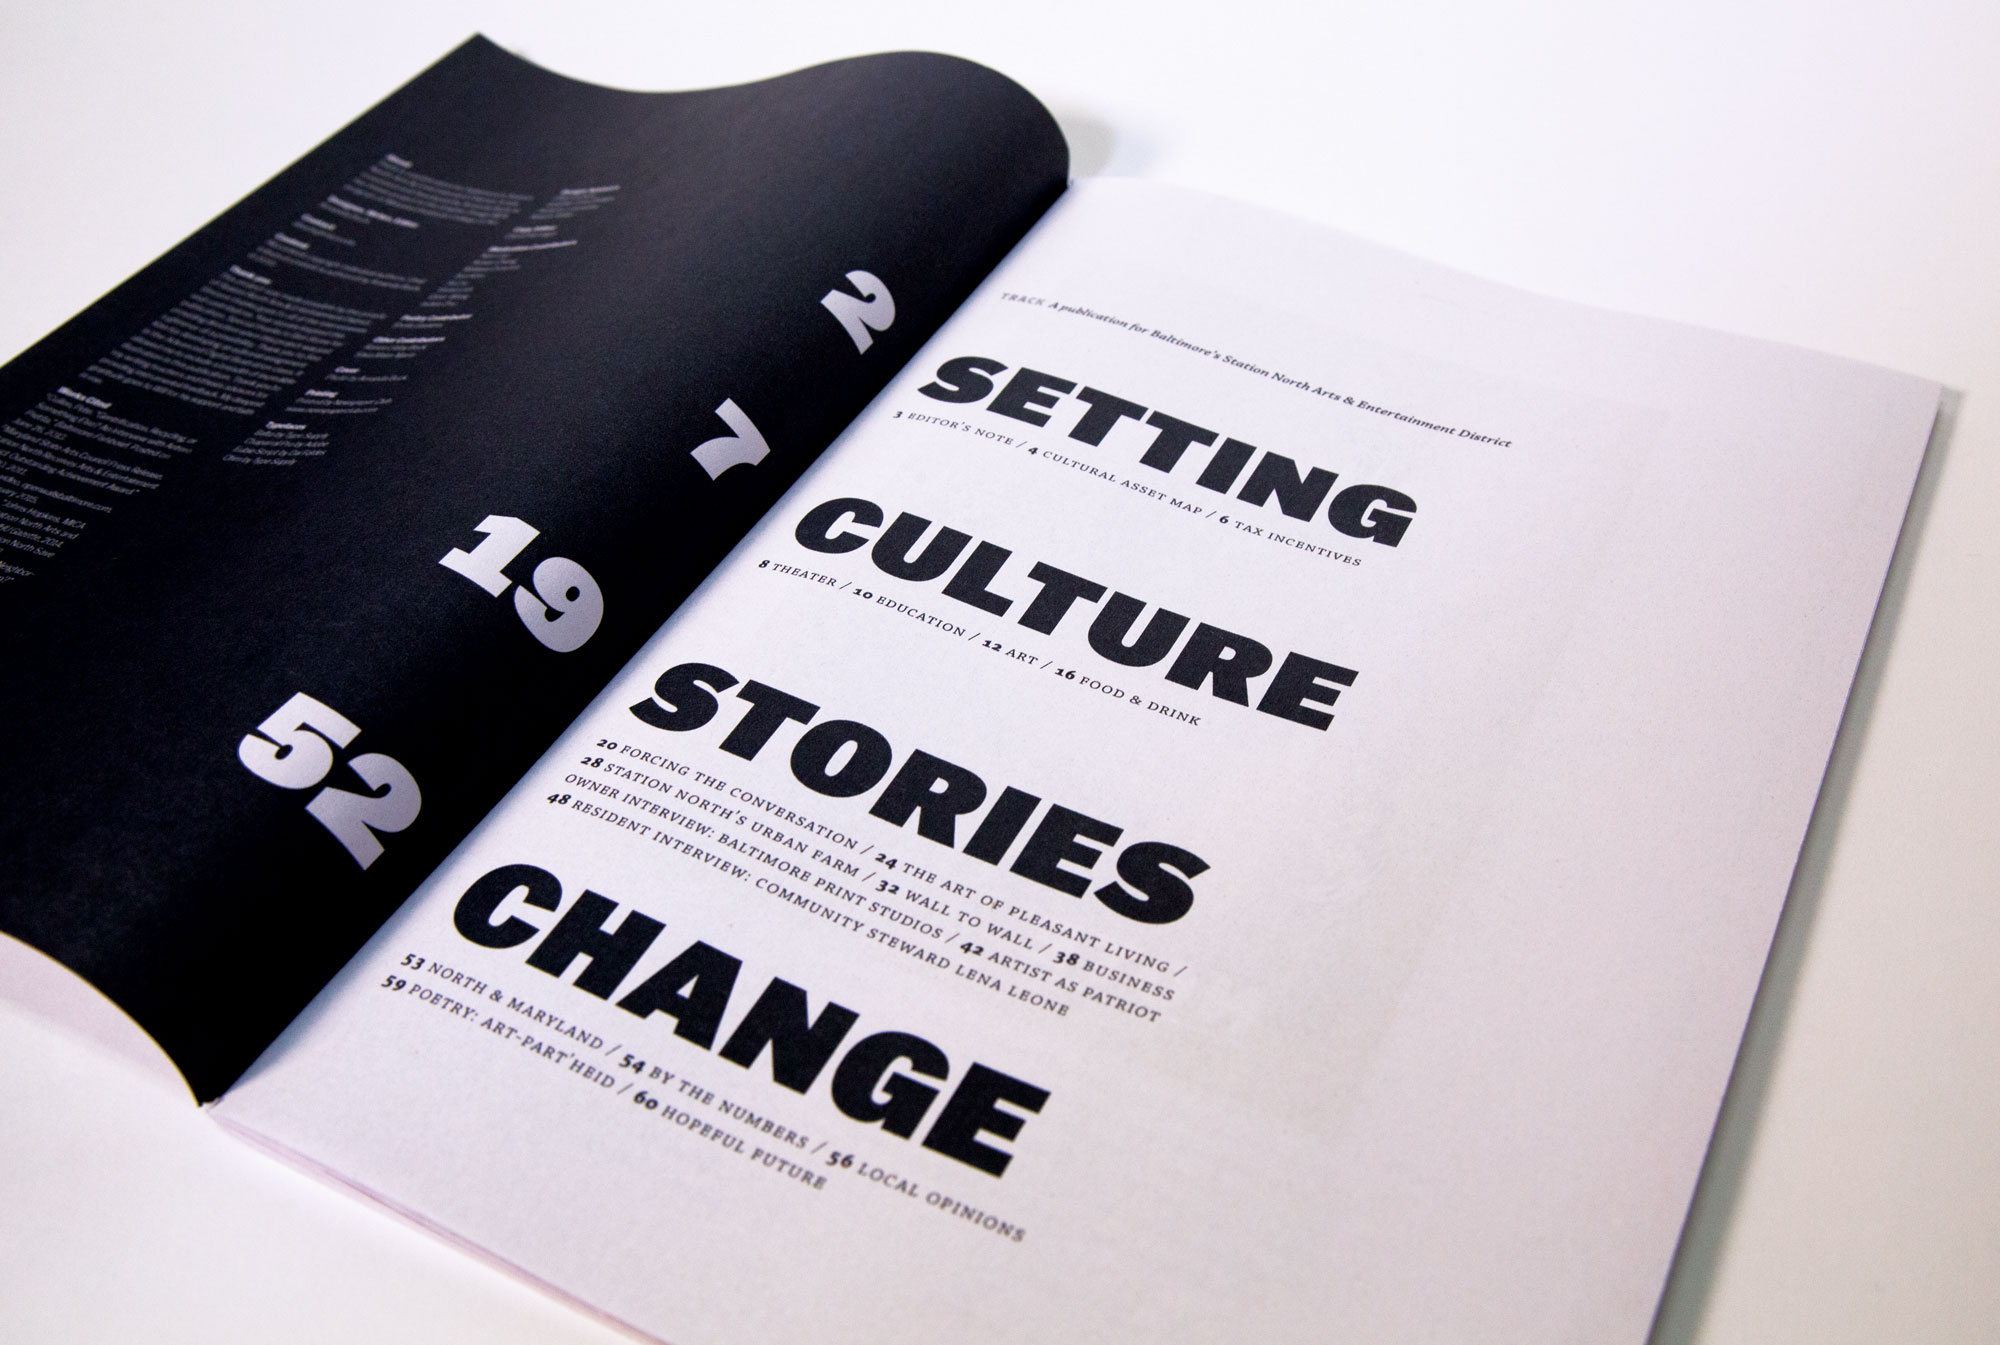 publication table of contents